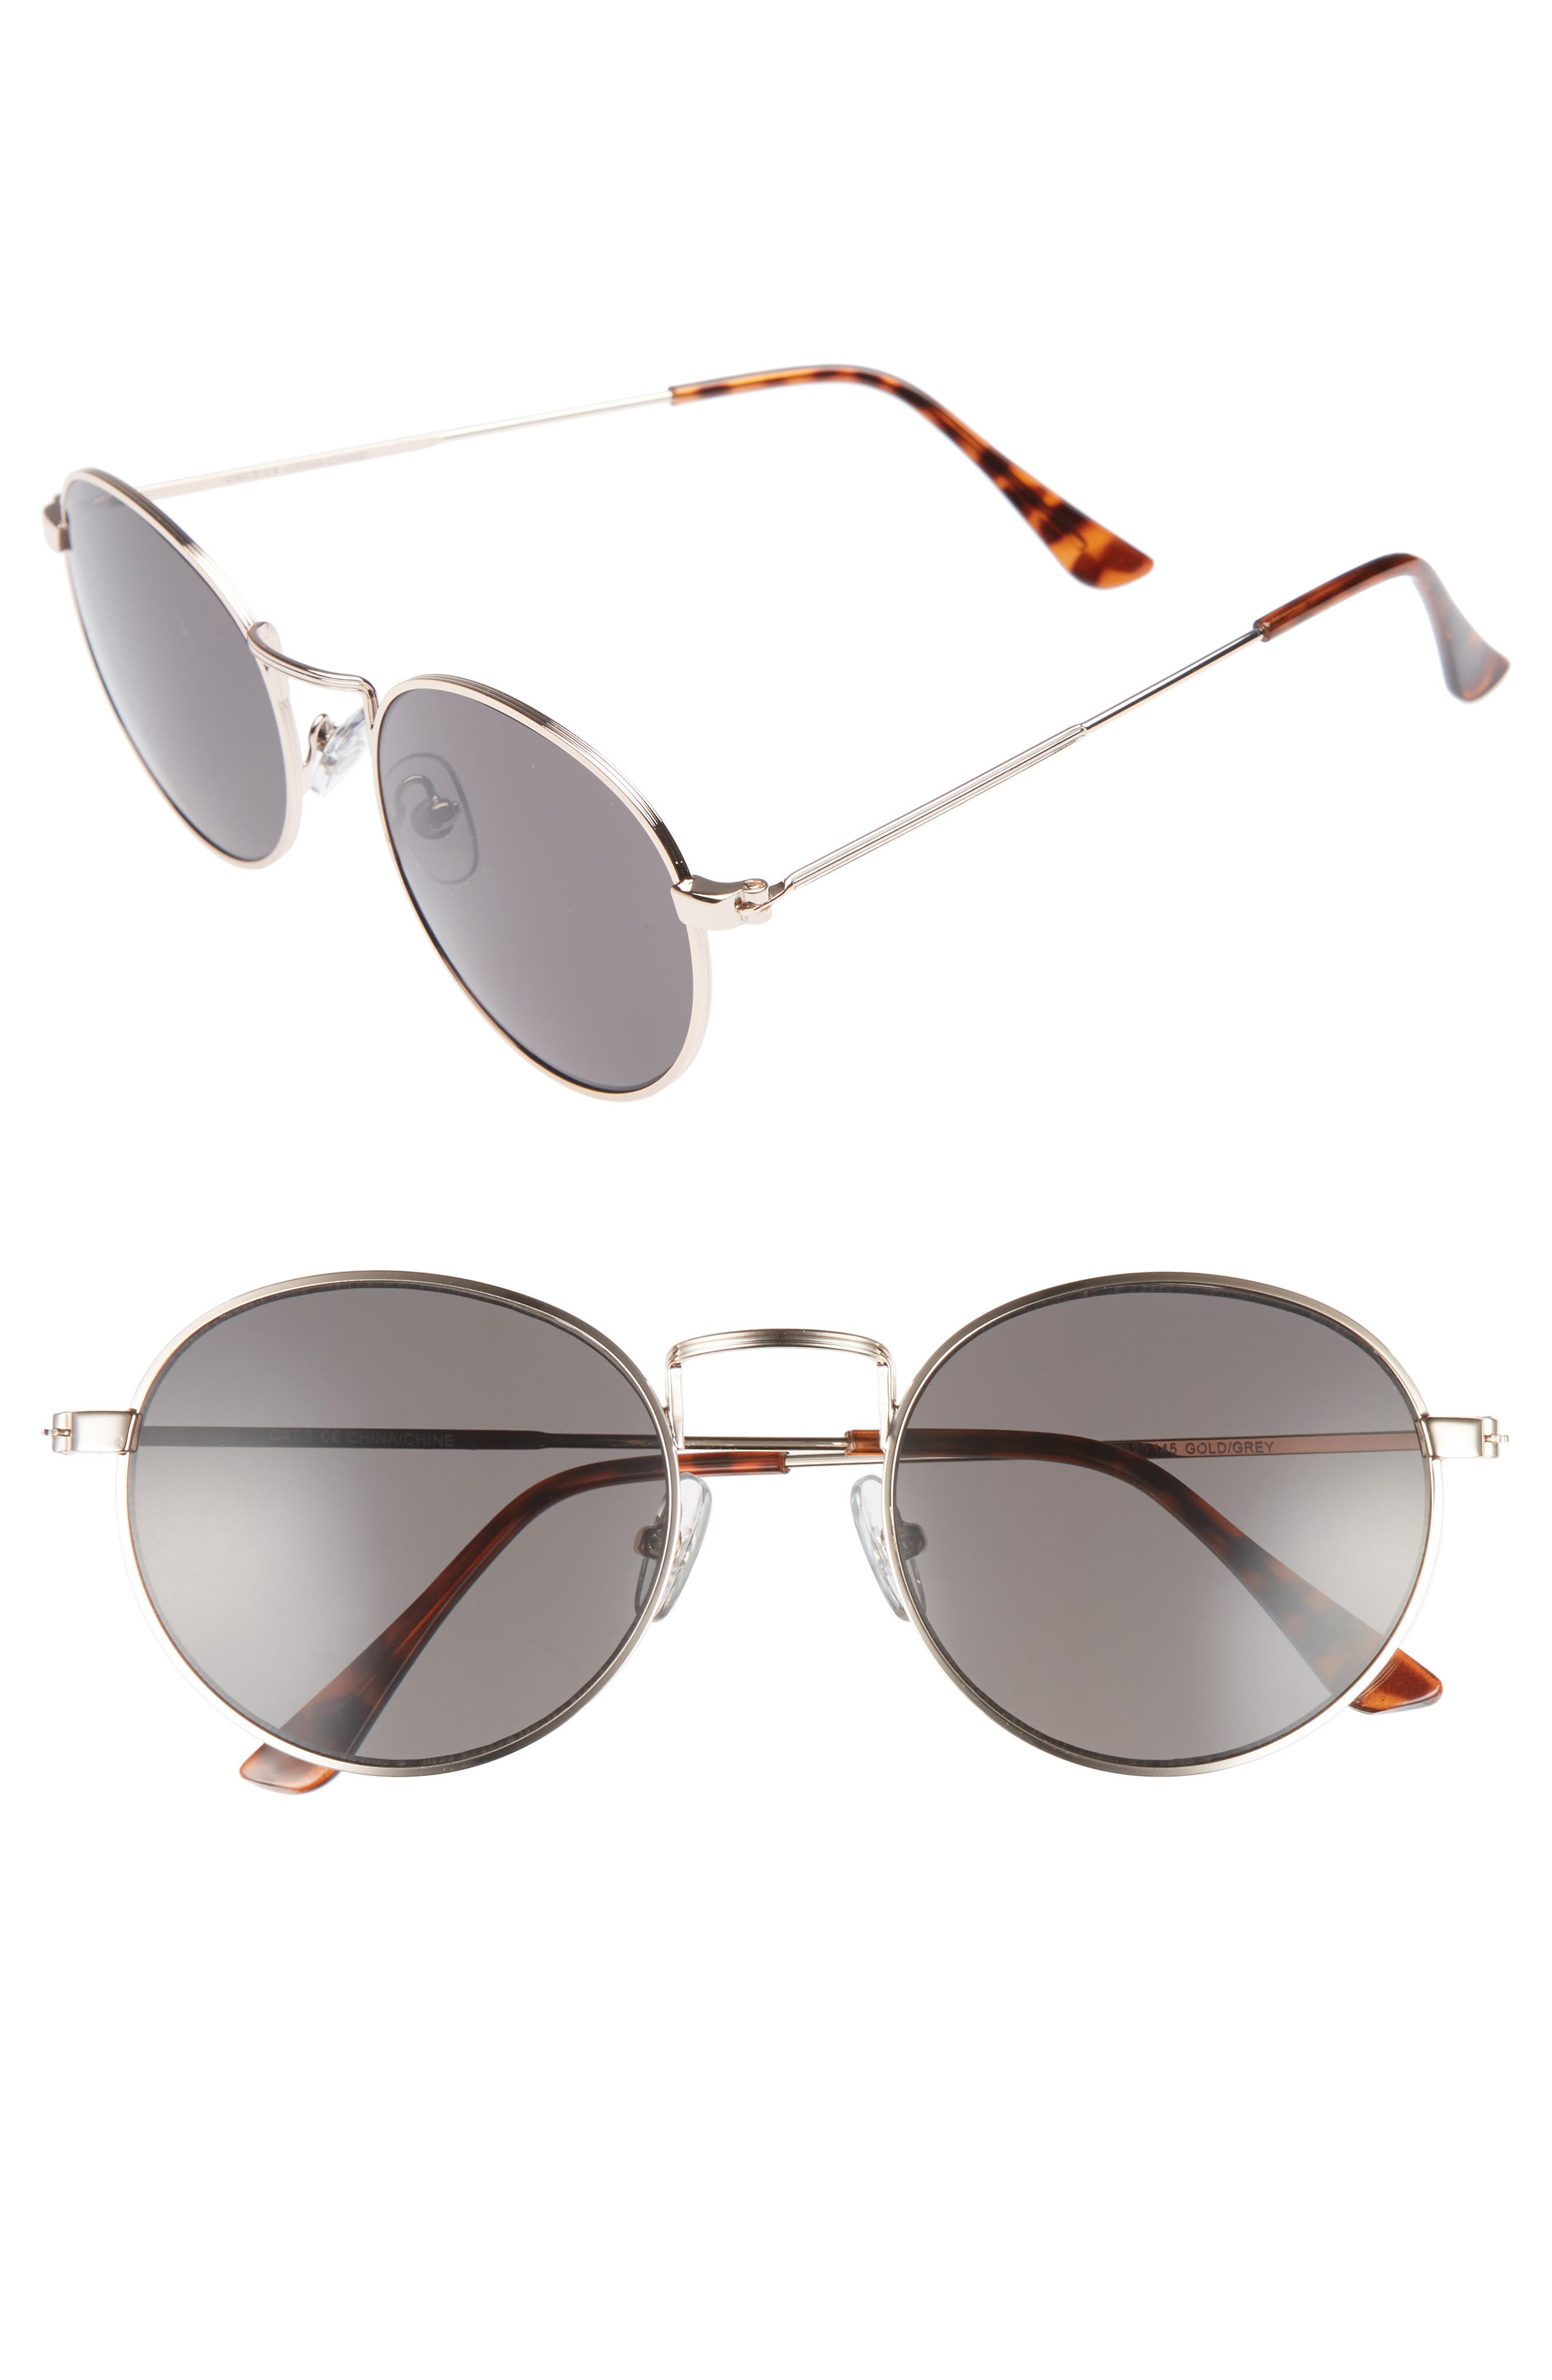 Lewis 54mm Round Sunglasses,                         Main,                         color, Gold/ Grey